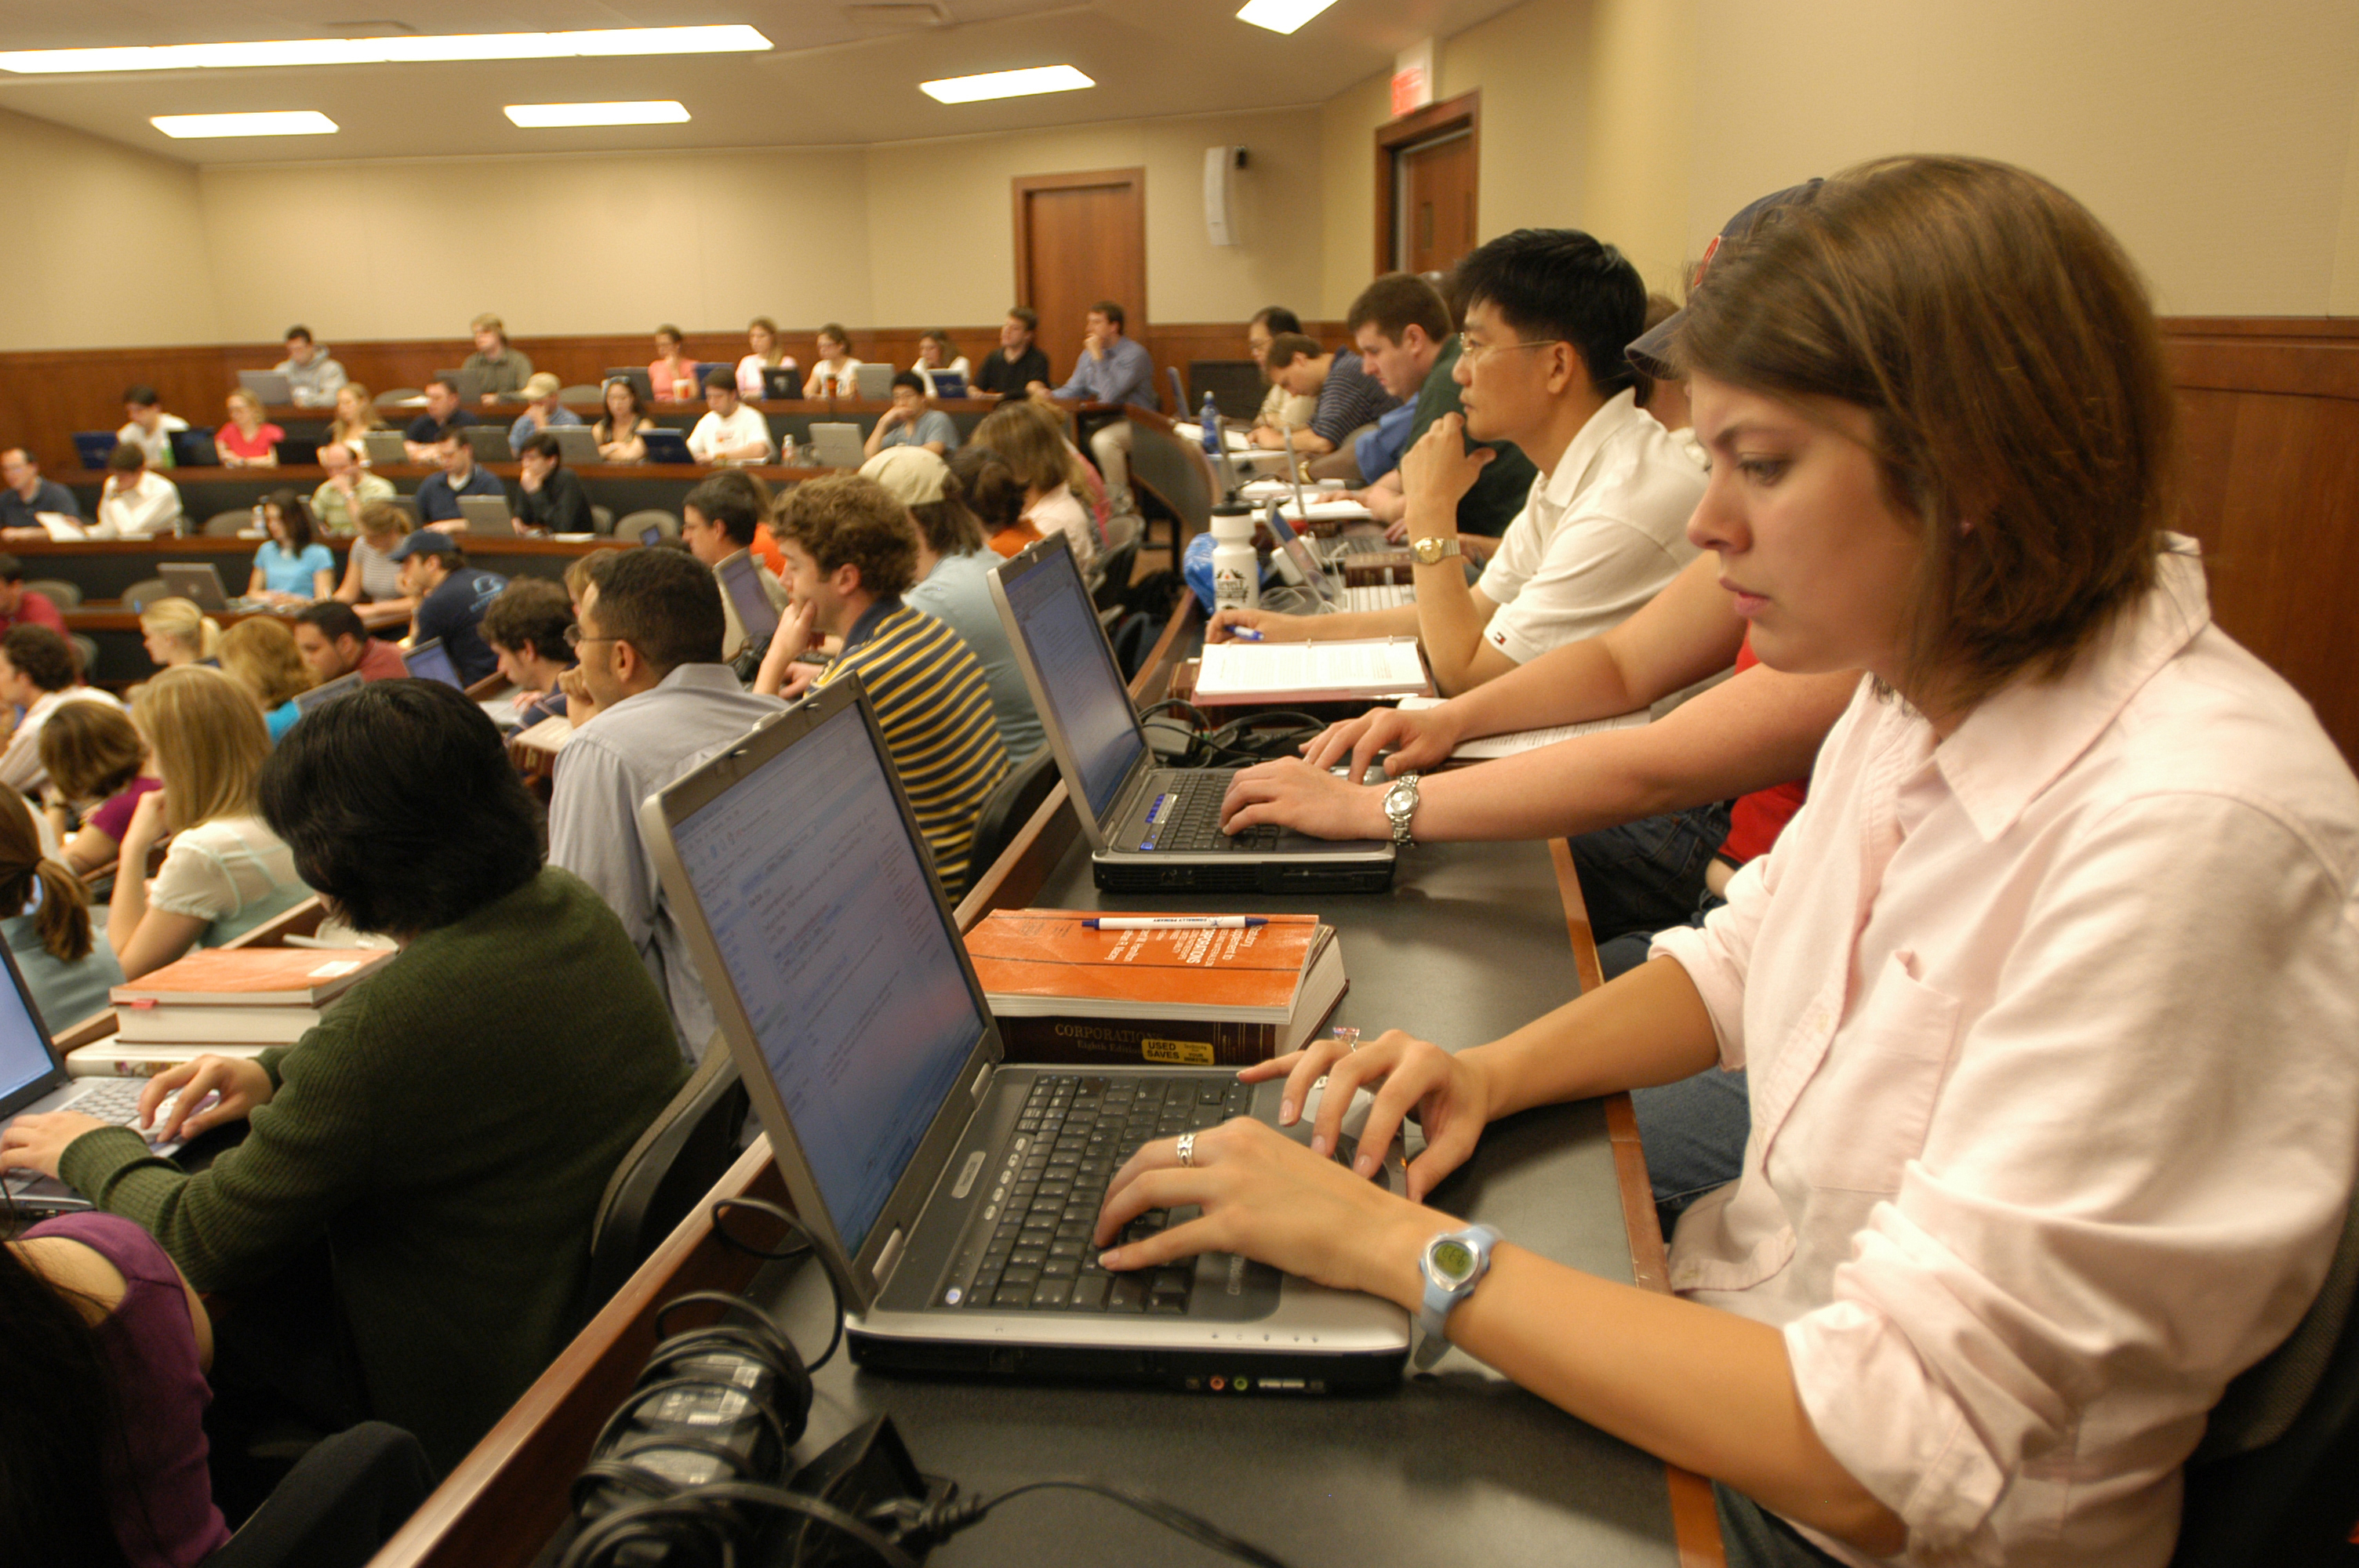 Students on laptops attentive to a class lecture